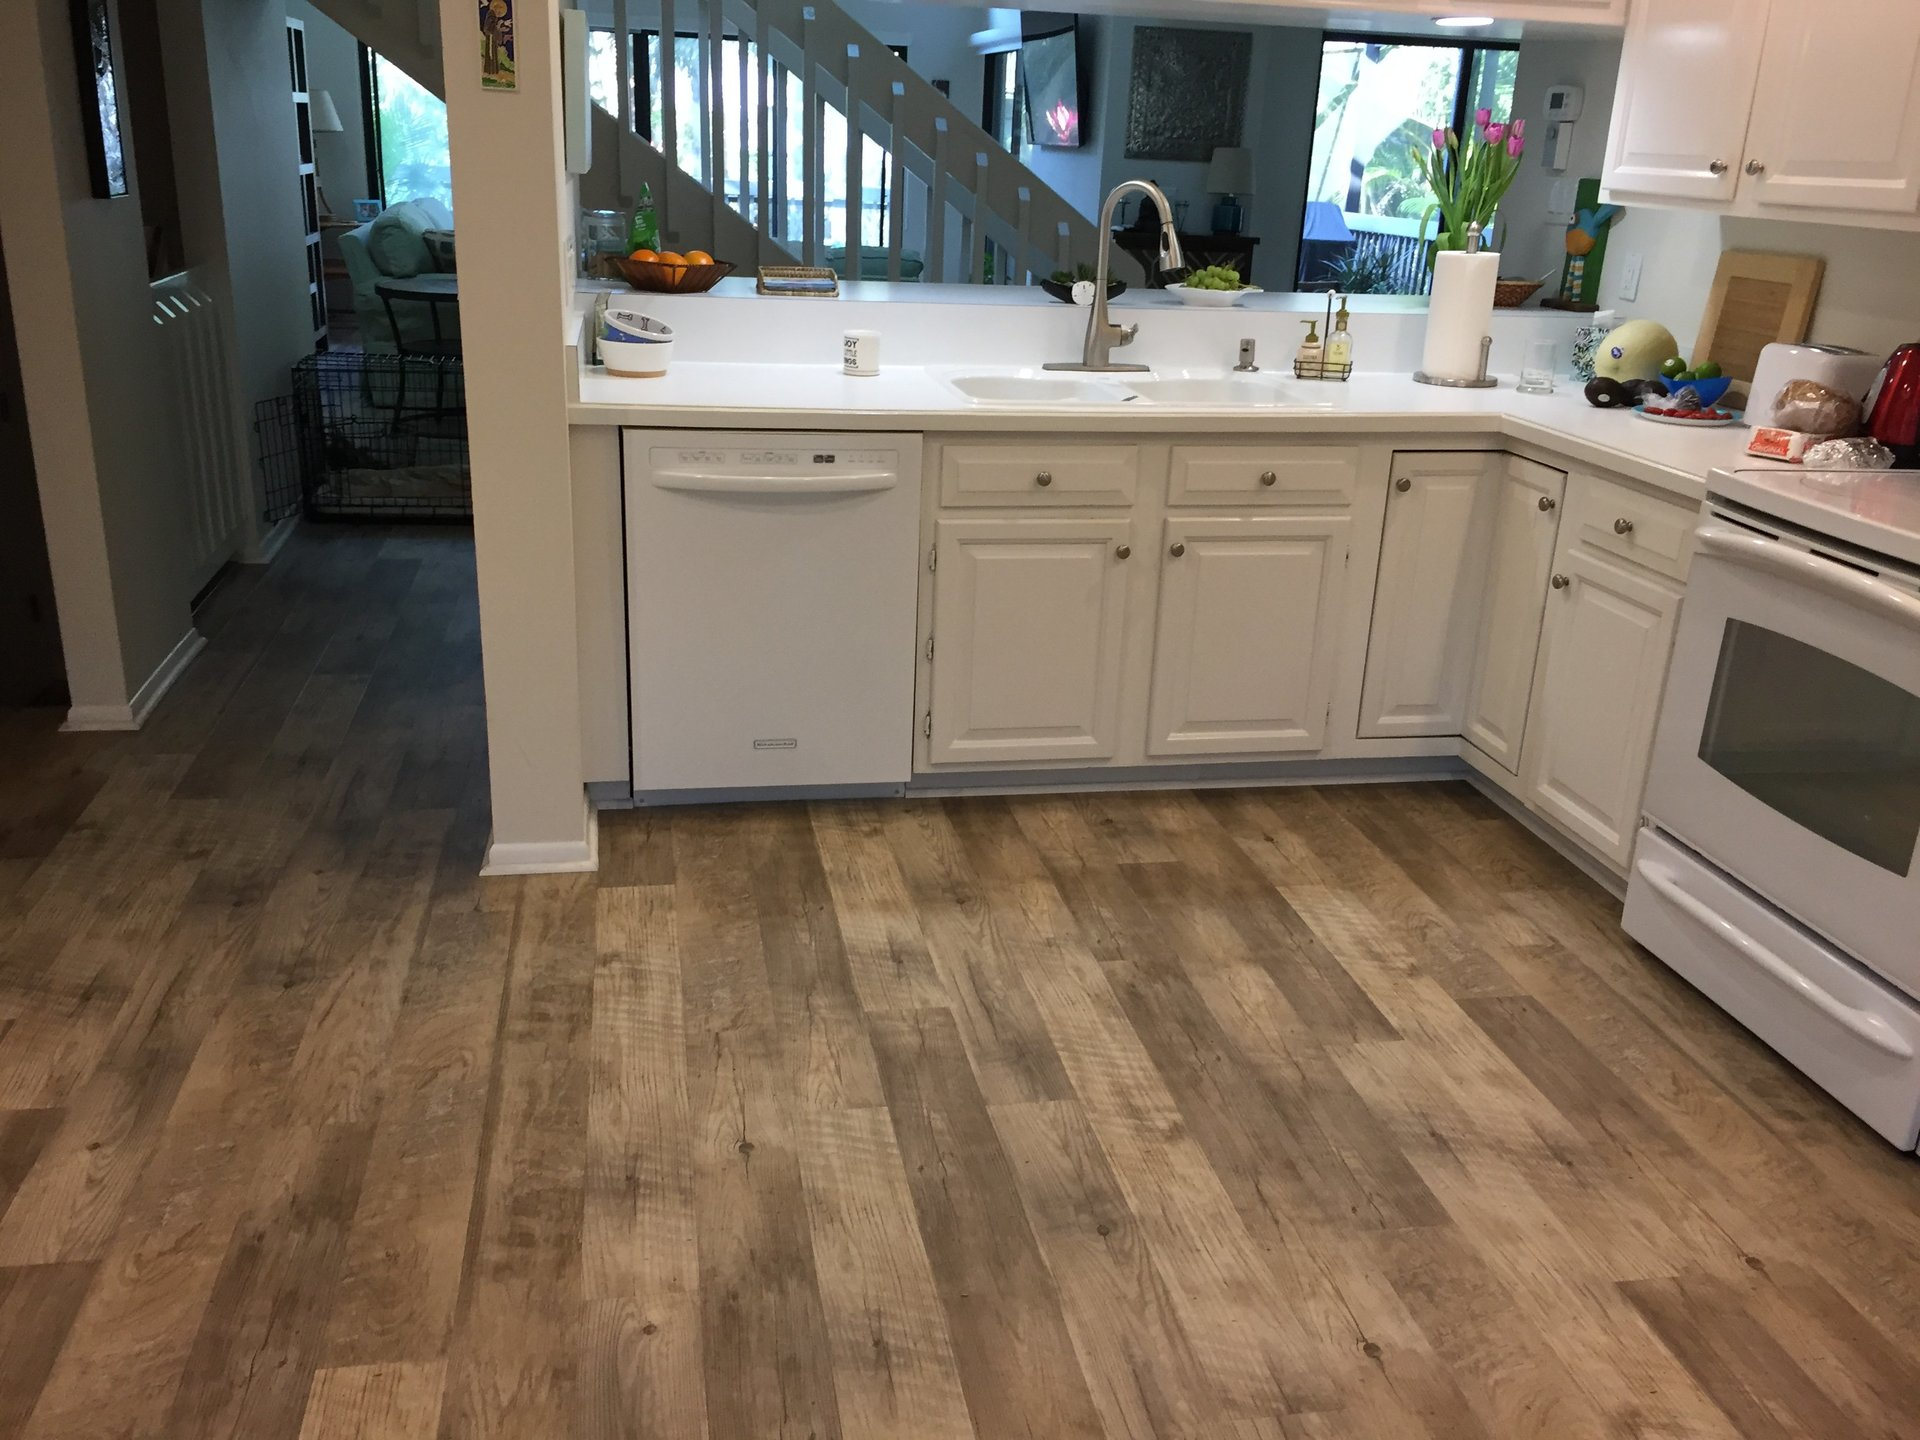 Brand-new Top 34 Trends In Mannington Adura Max Reviews To Watch | IG51